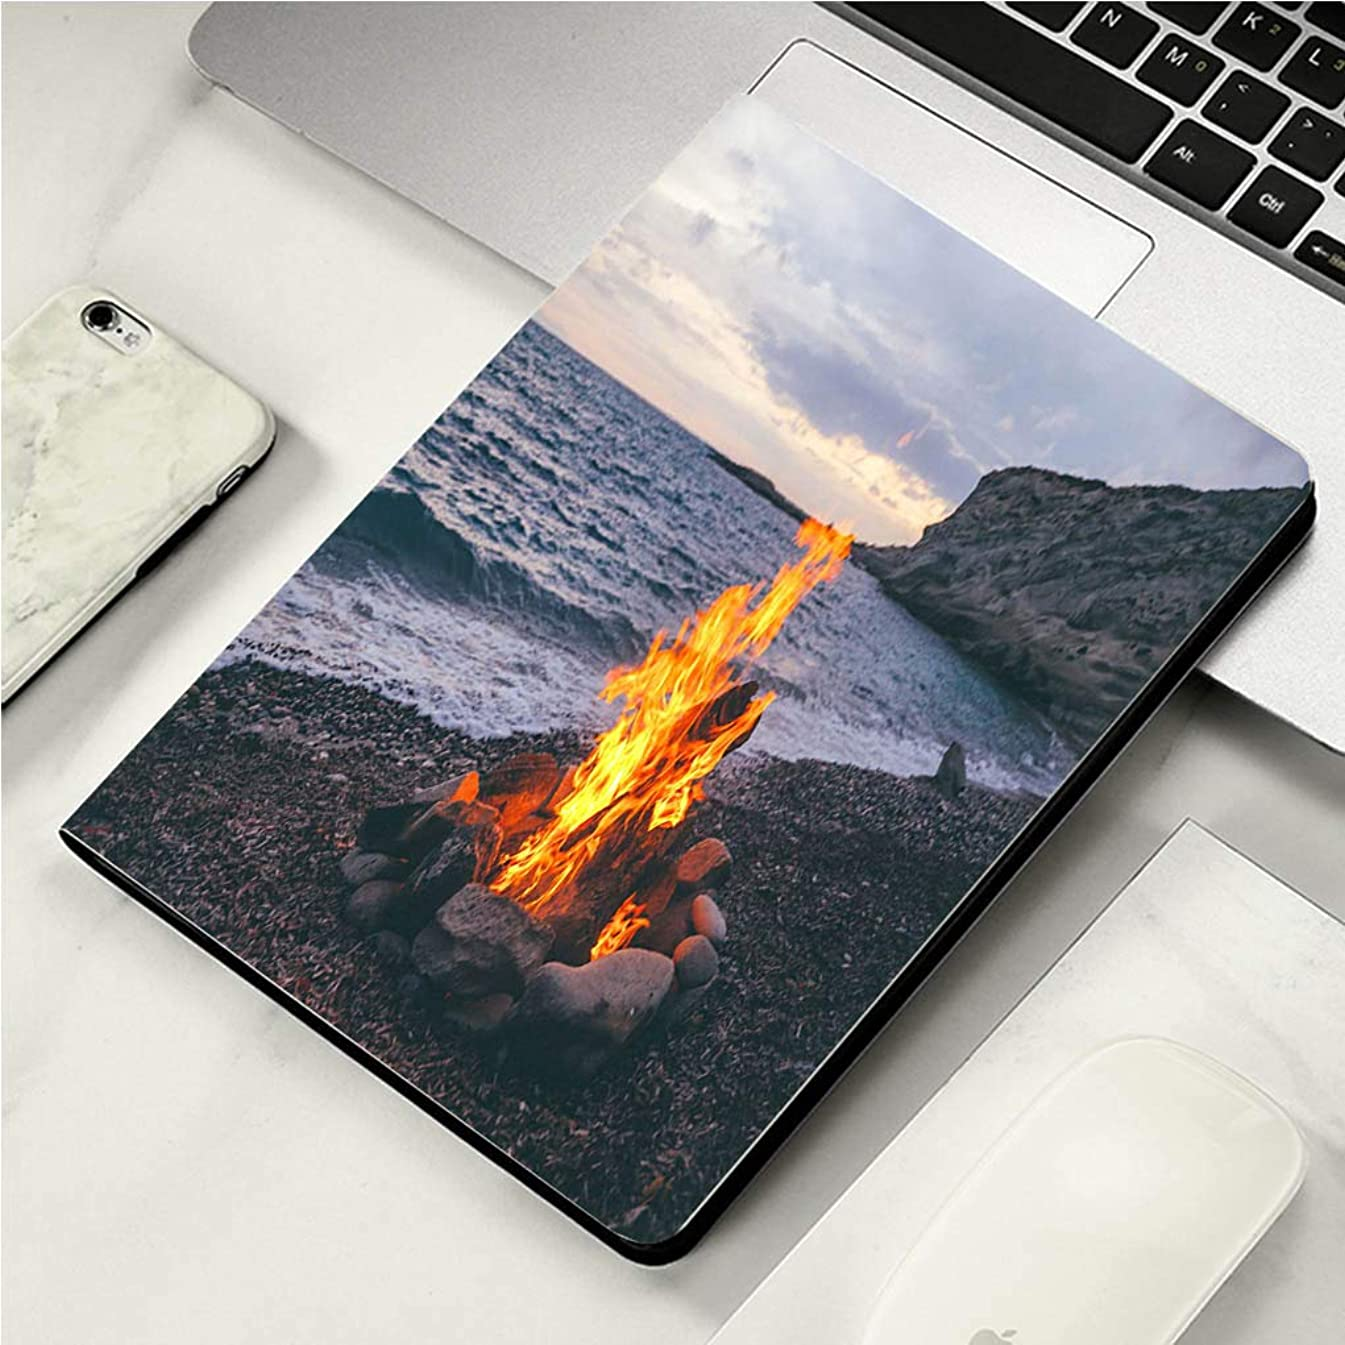 Case for iPad air1 2 Case Auto Sleep/Wake up Smart Cover for iPad 9.7